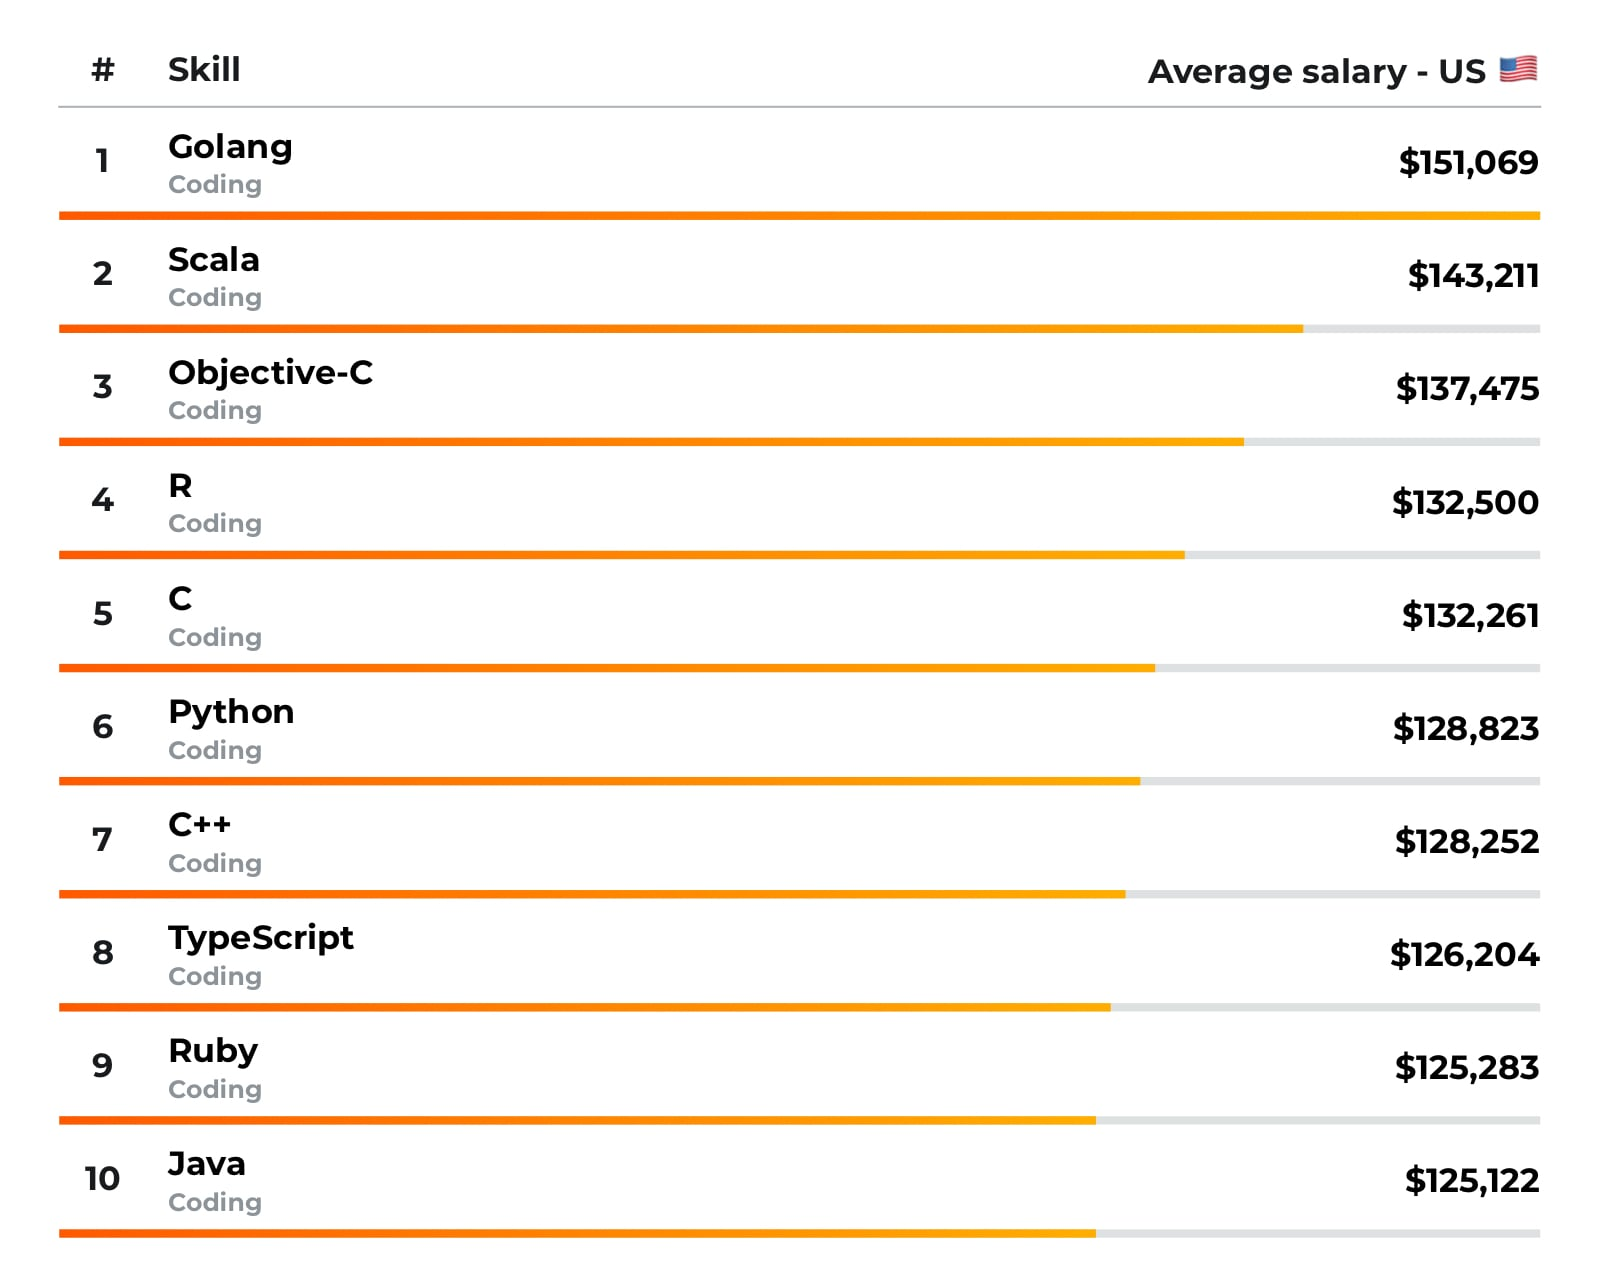 Infographic showing the highest-earning skills in the US.